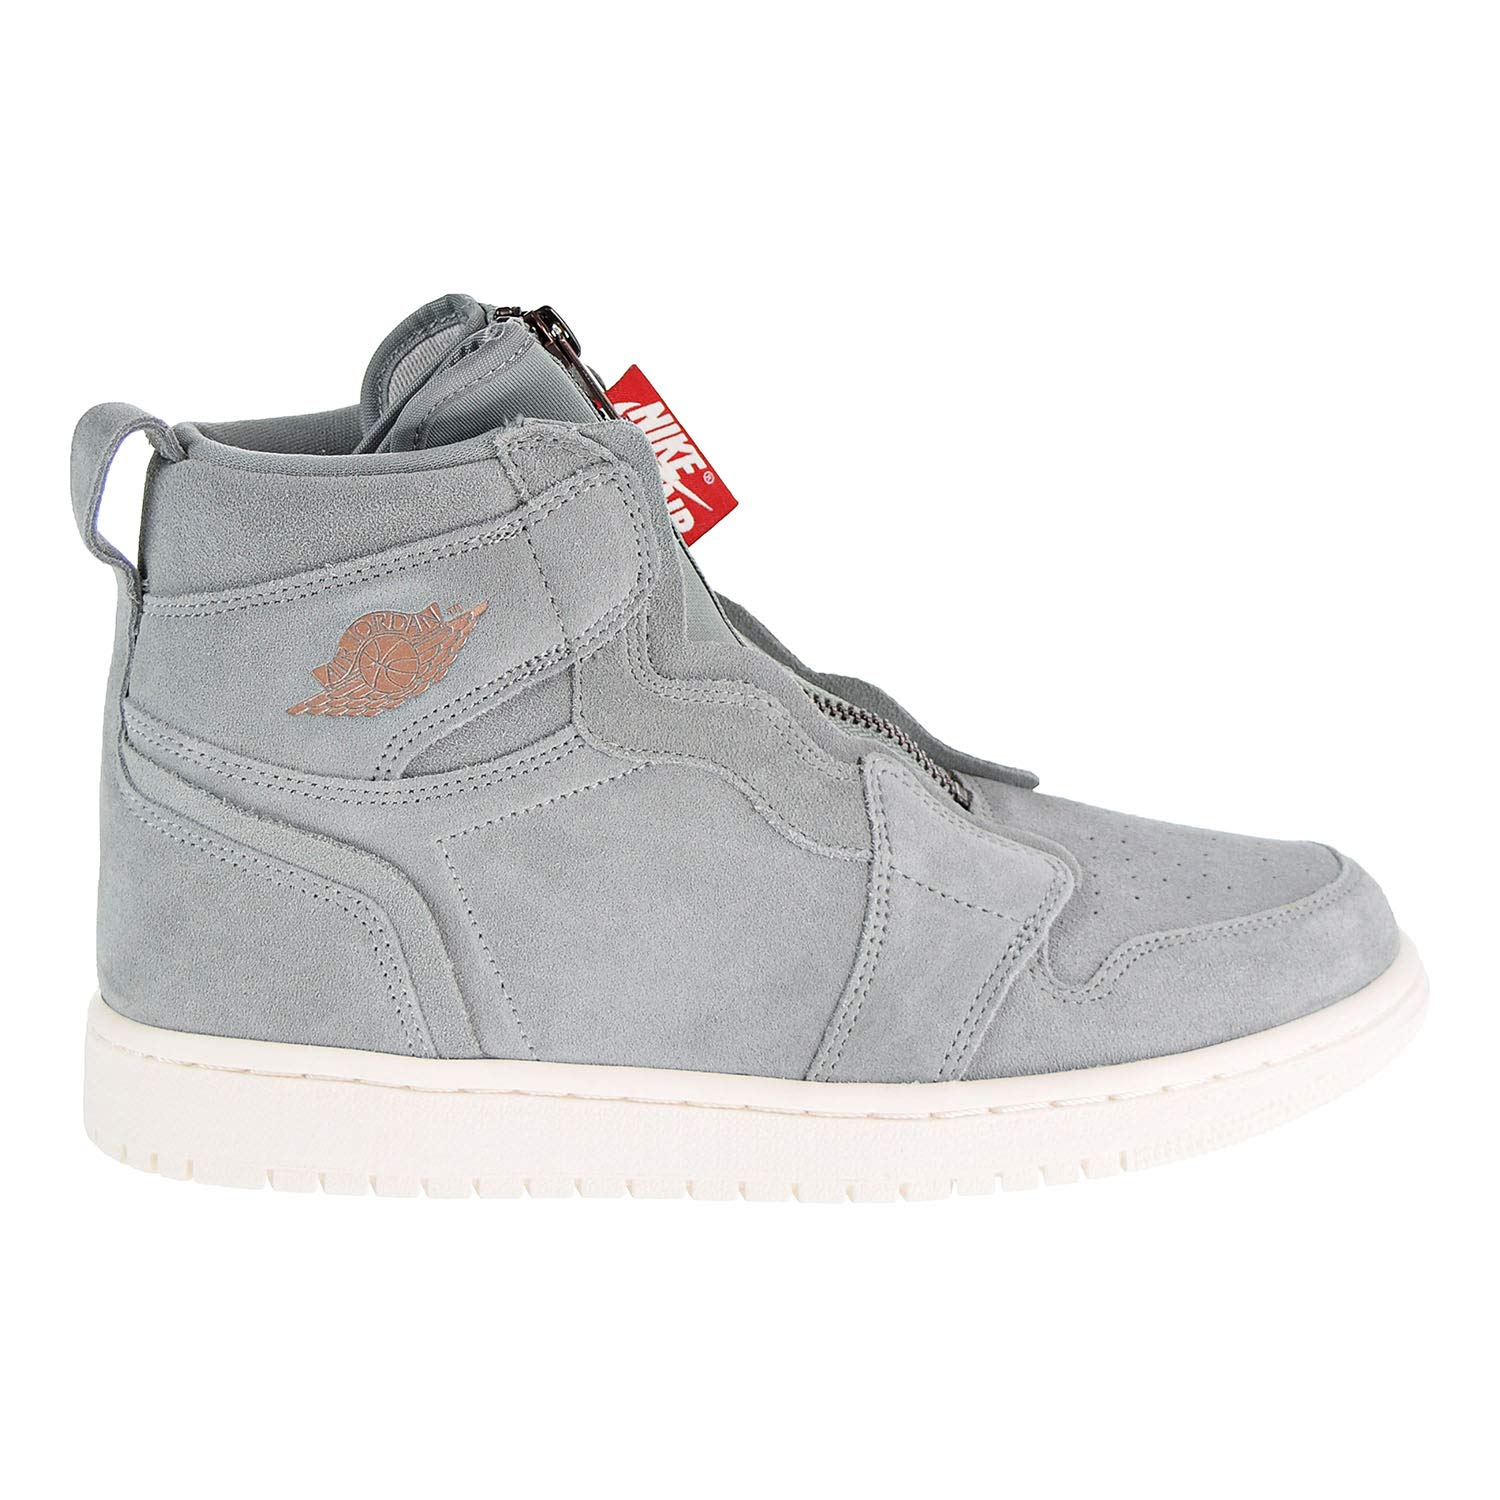 premium selection 555ce 02352 Amazon.com   Nike Women s AIR Jordan 1 HIGH Zip Shoe MICA Green MTLC RED  Bronze   Fashion Sneakers